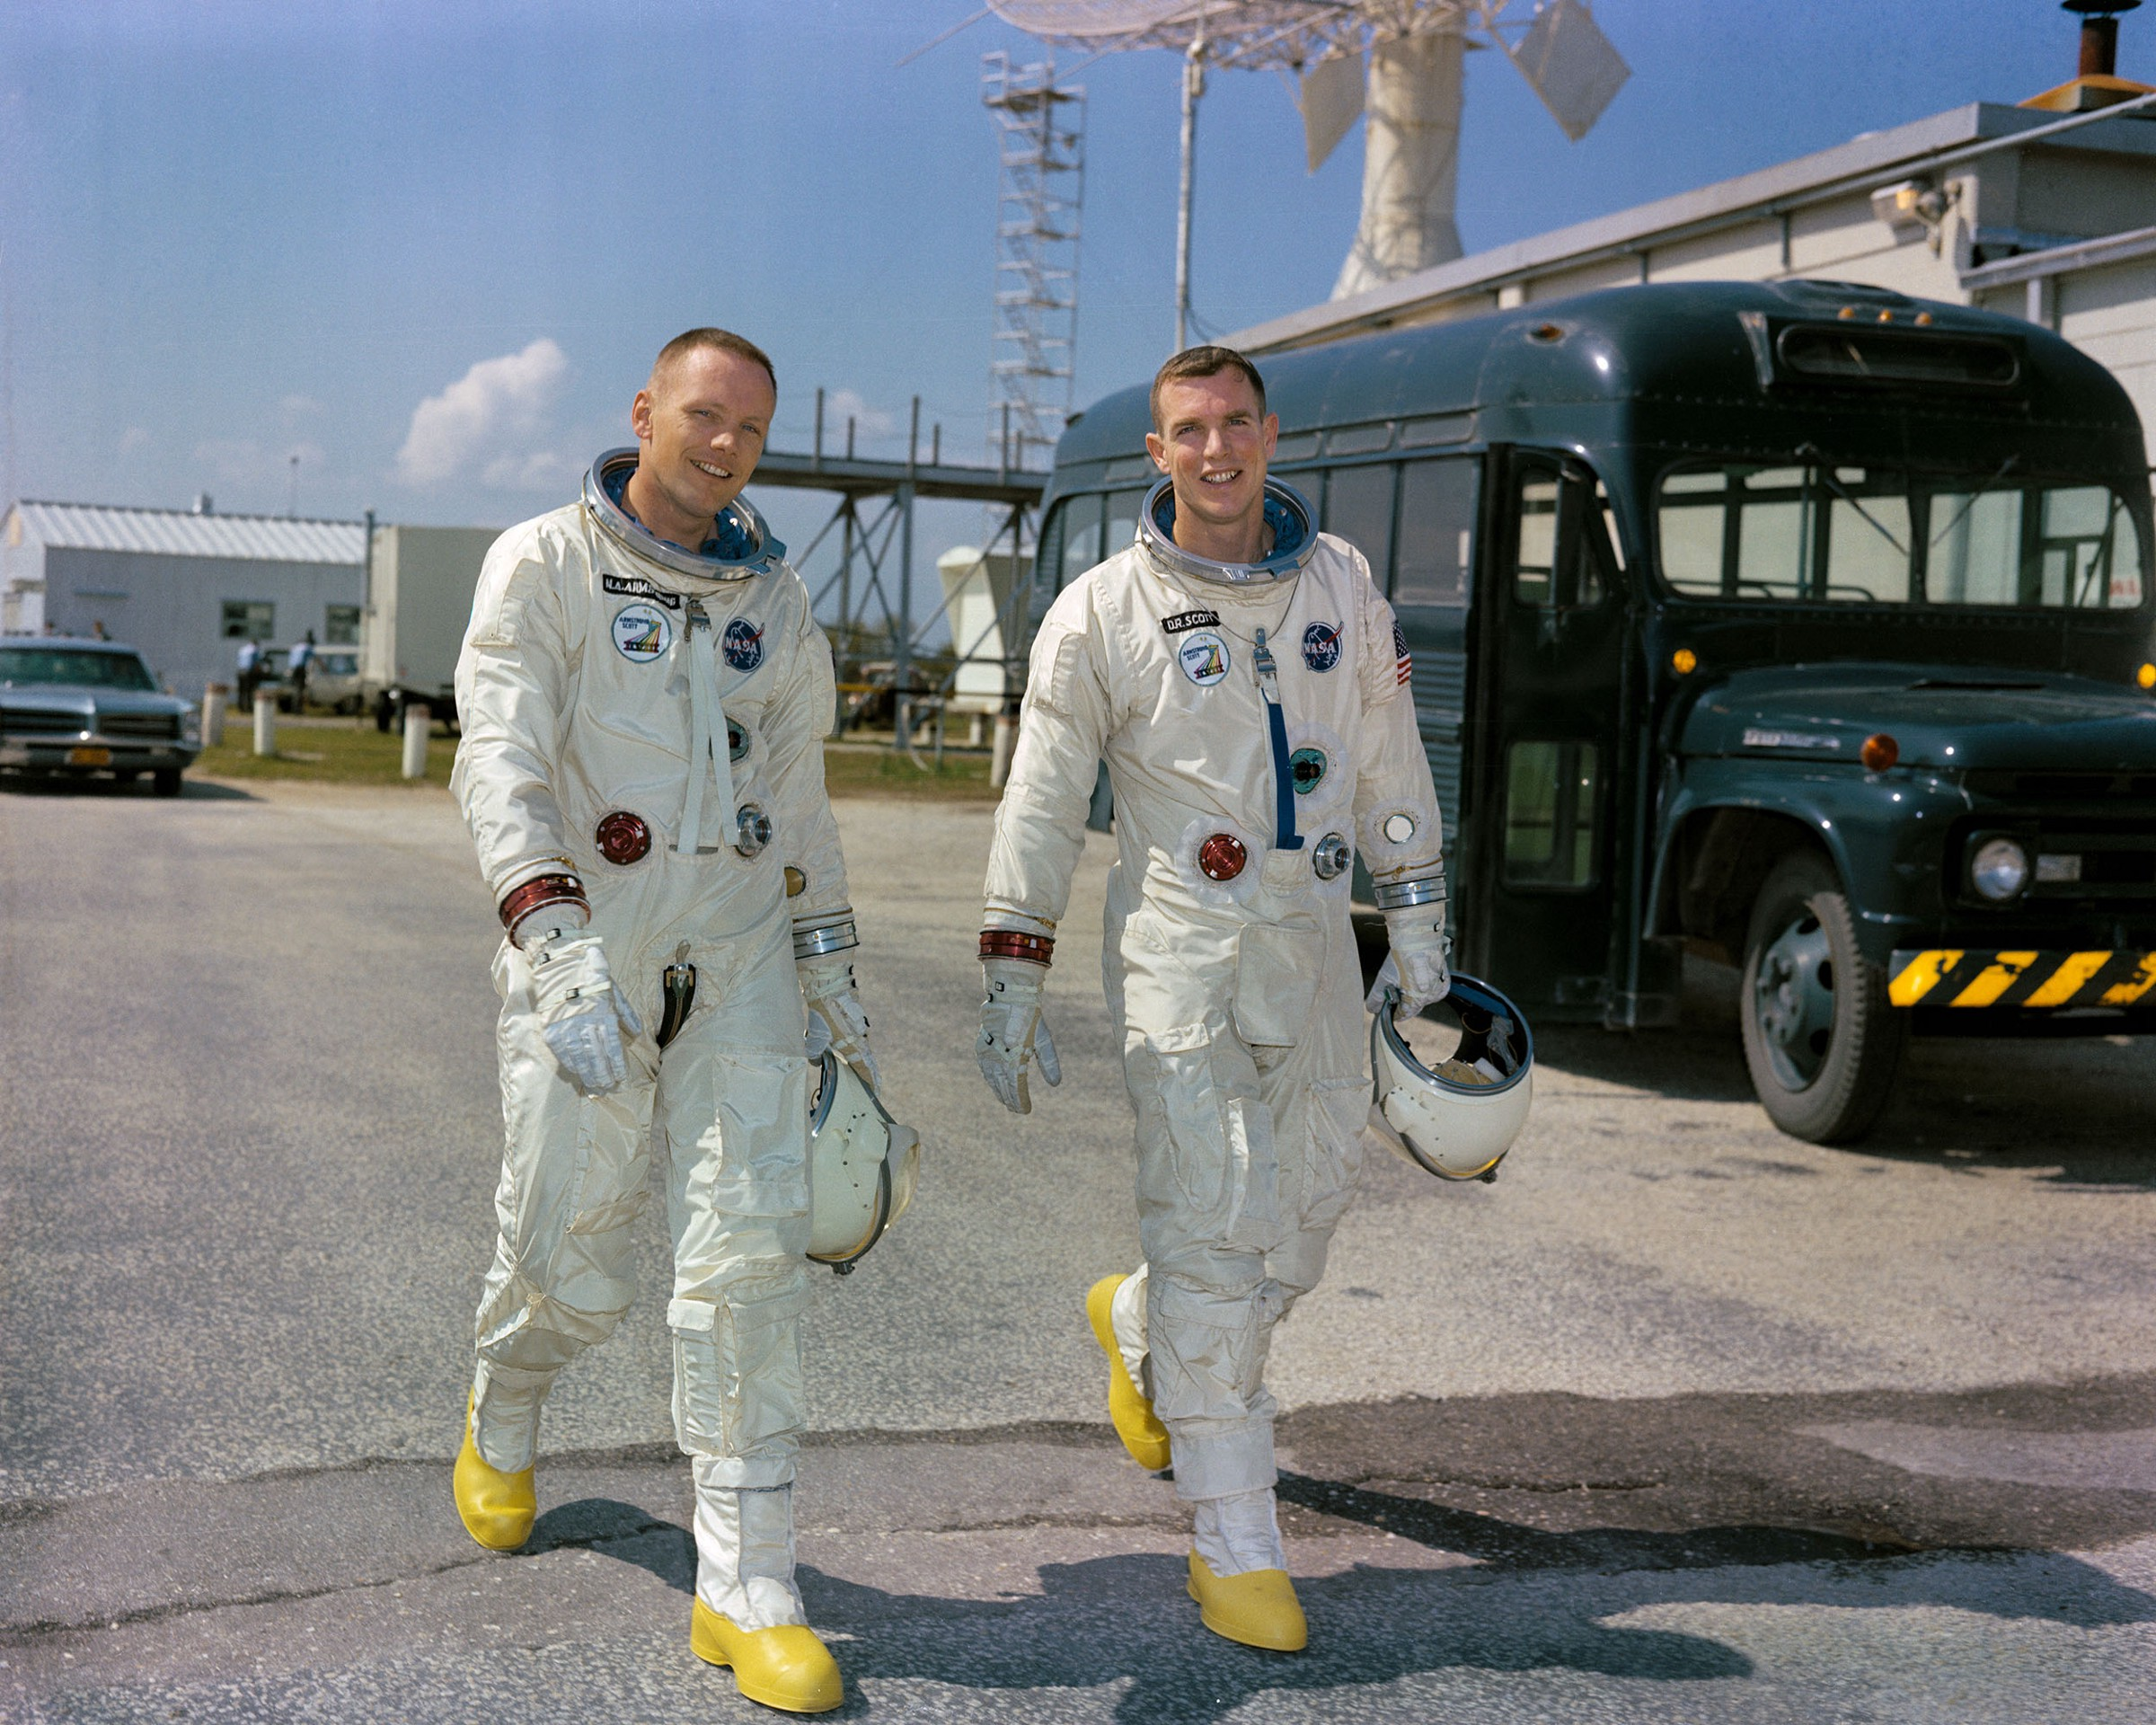 626ef8cc75 All smiles for the Gemini 8 prime crew of Neil Armstrong and David Scott